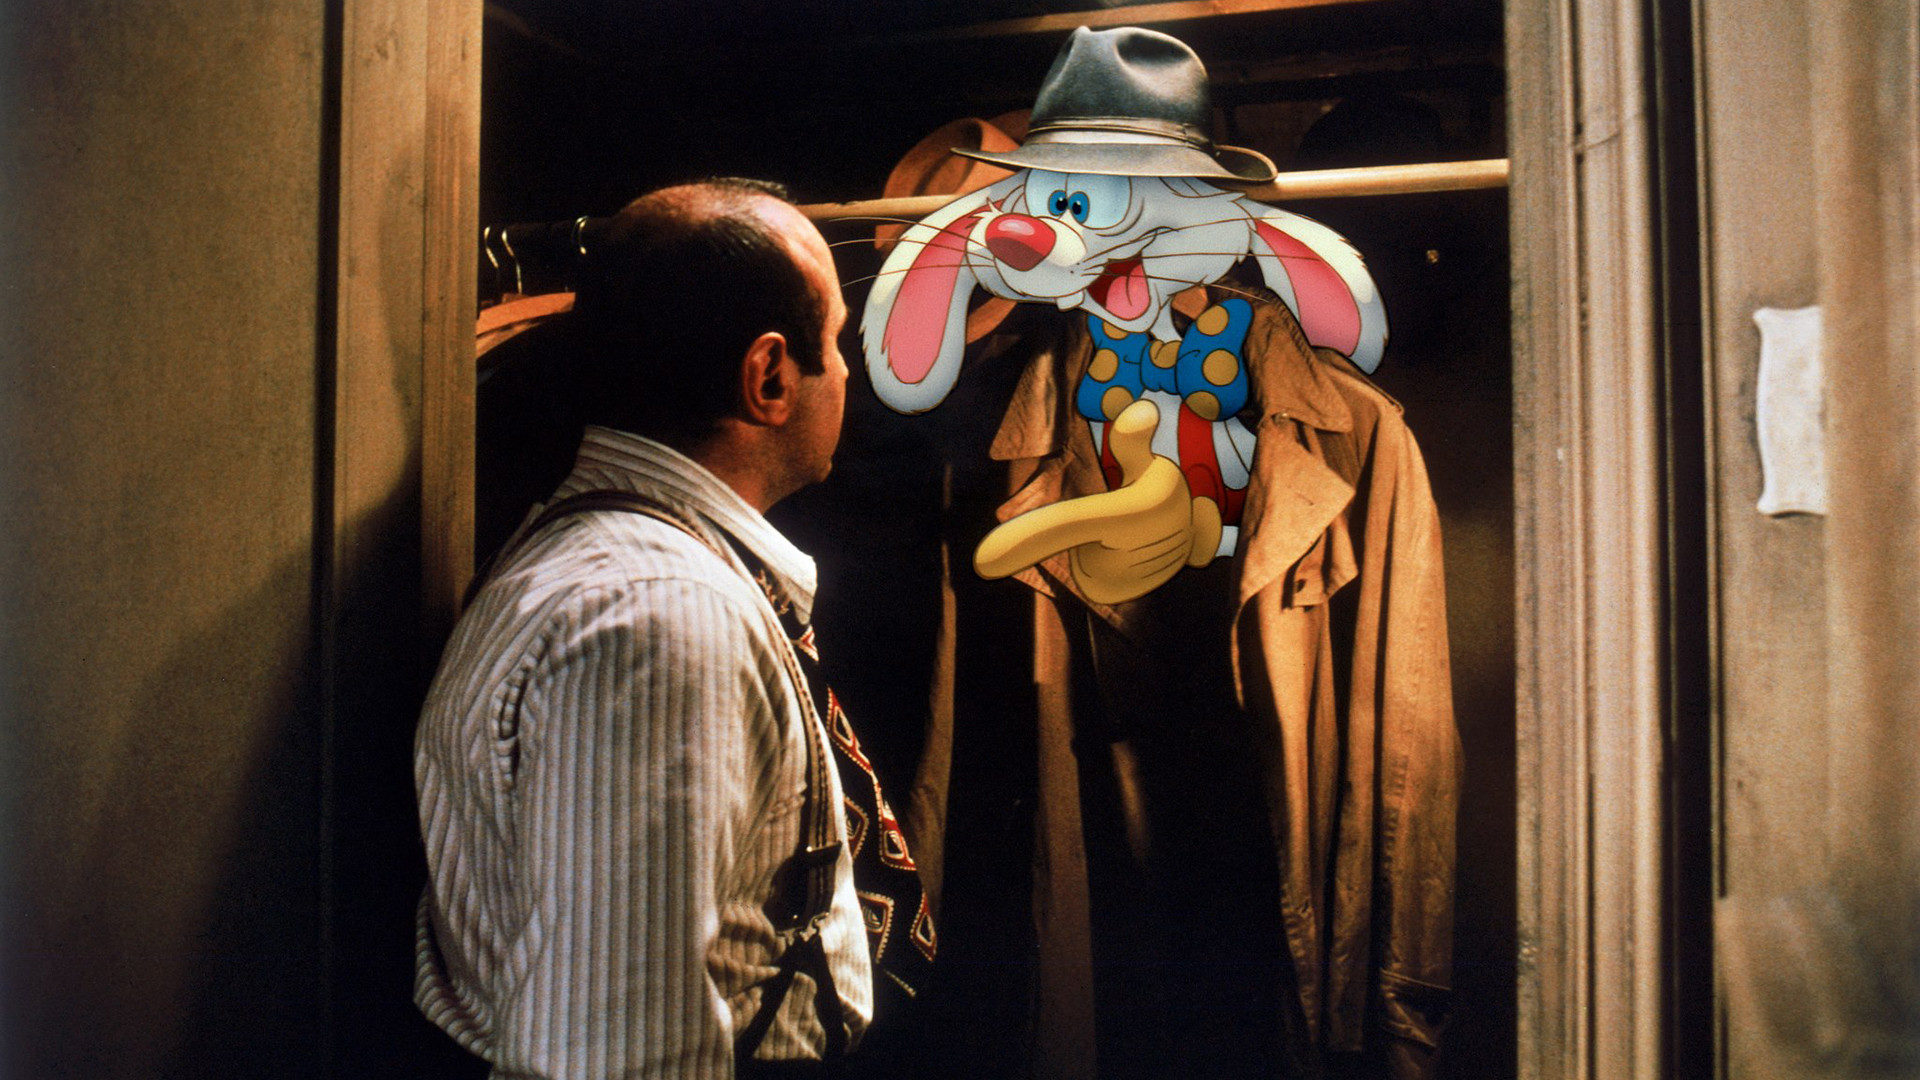 Who Framed Roger Rabbit (1988) - About the Movie | Amblin